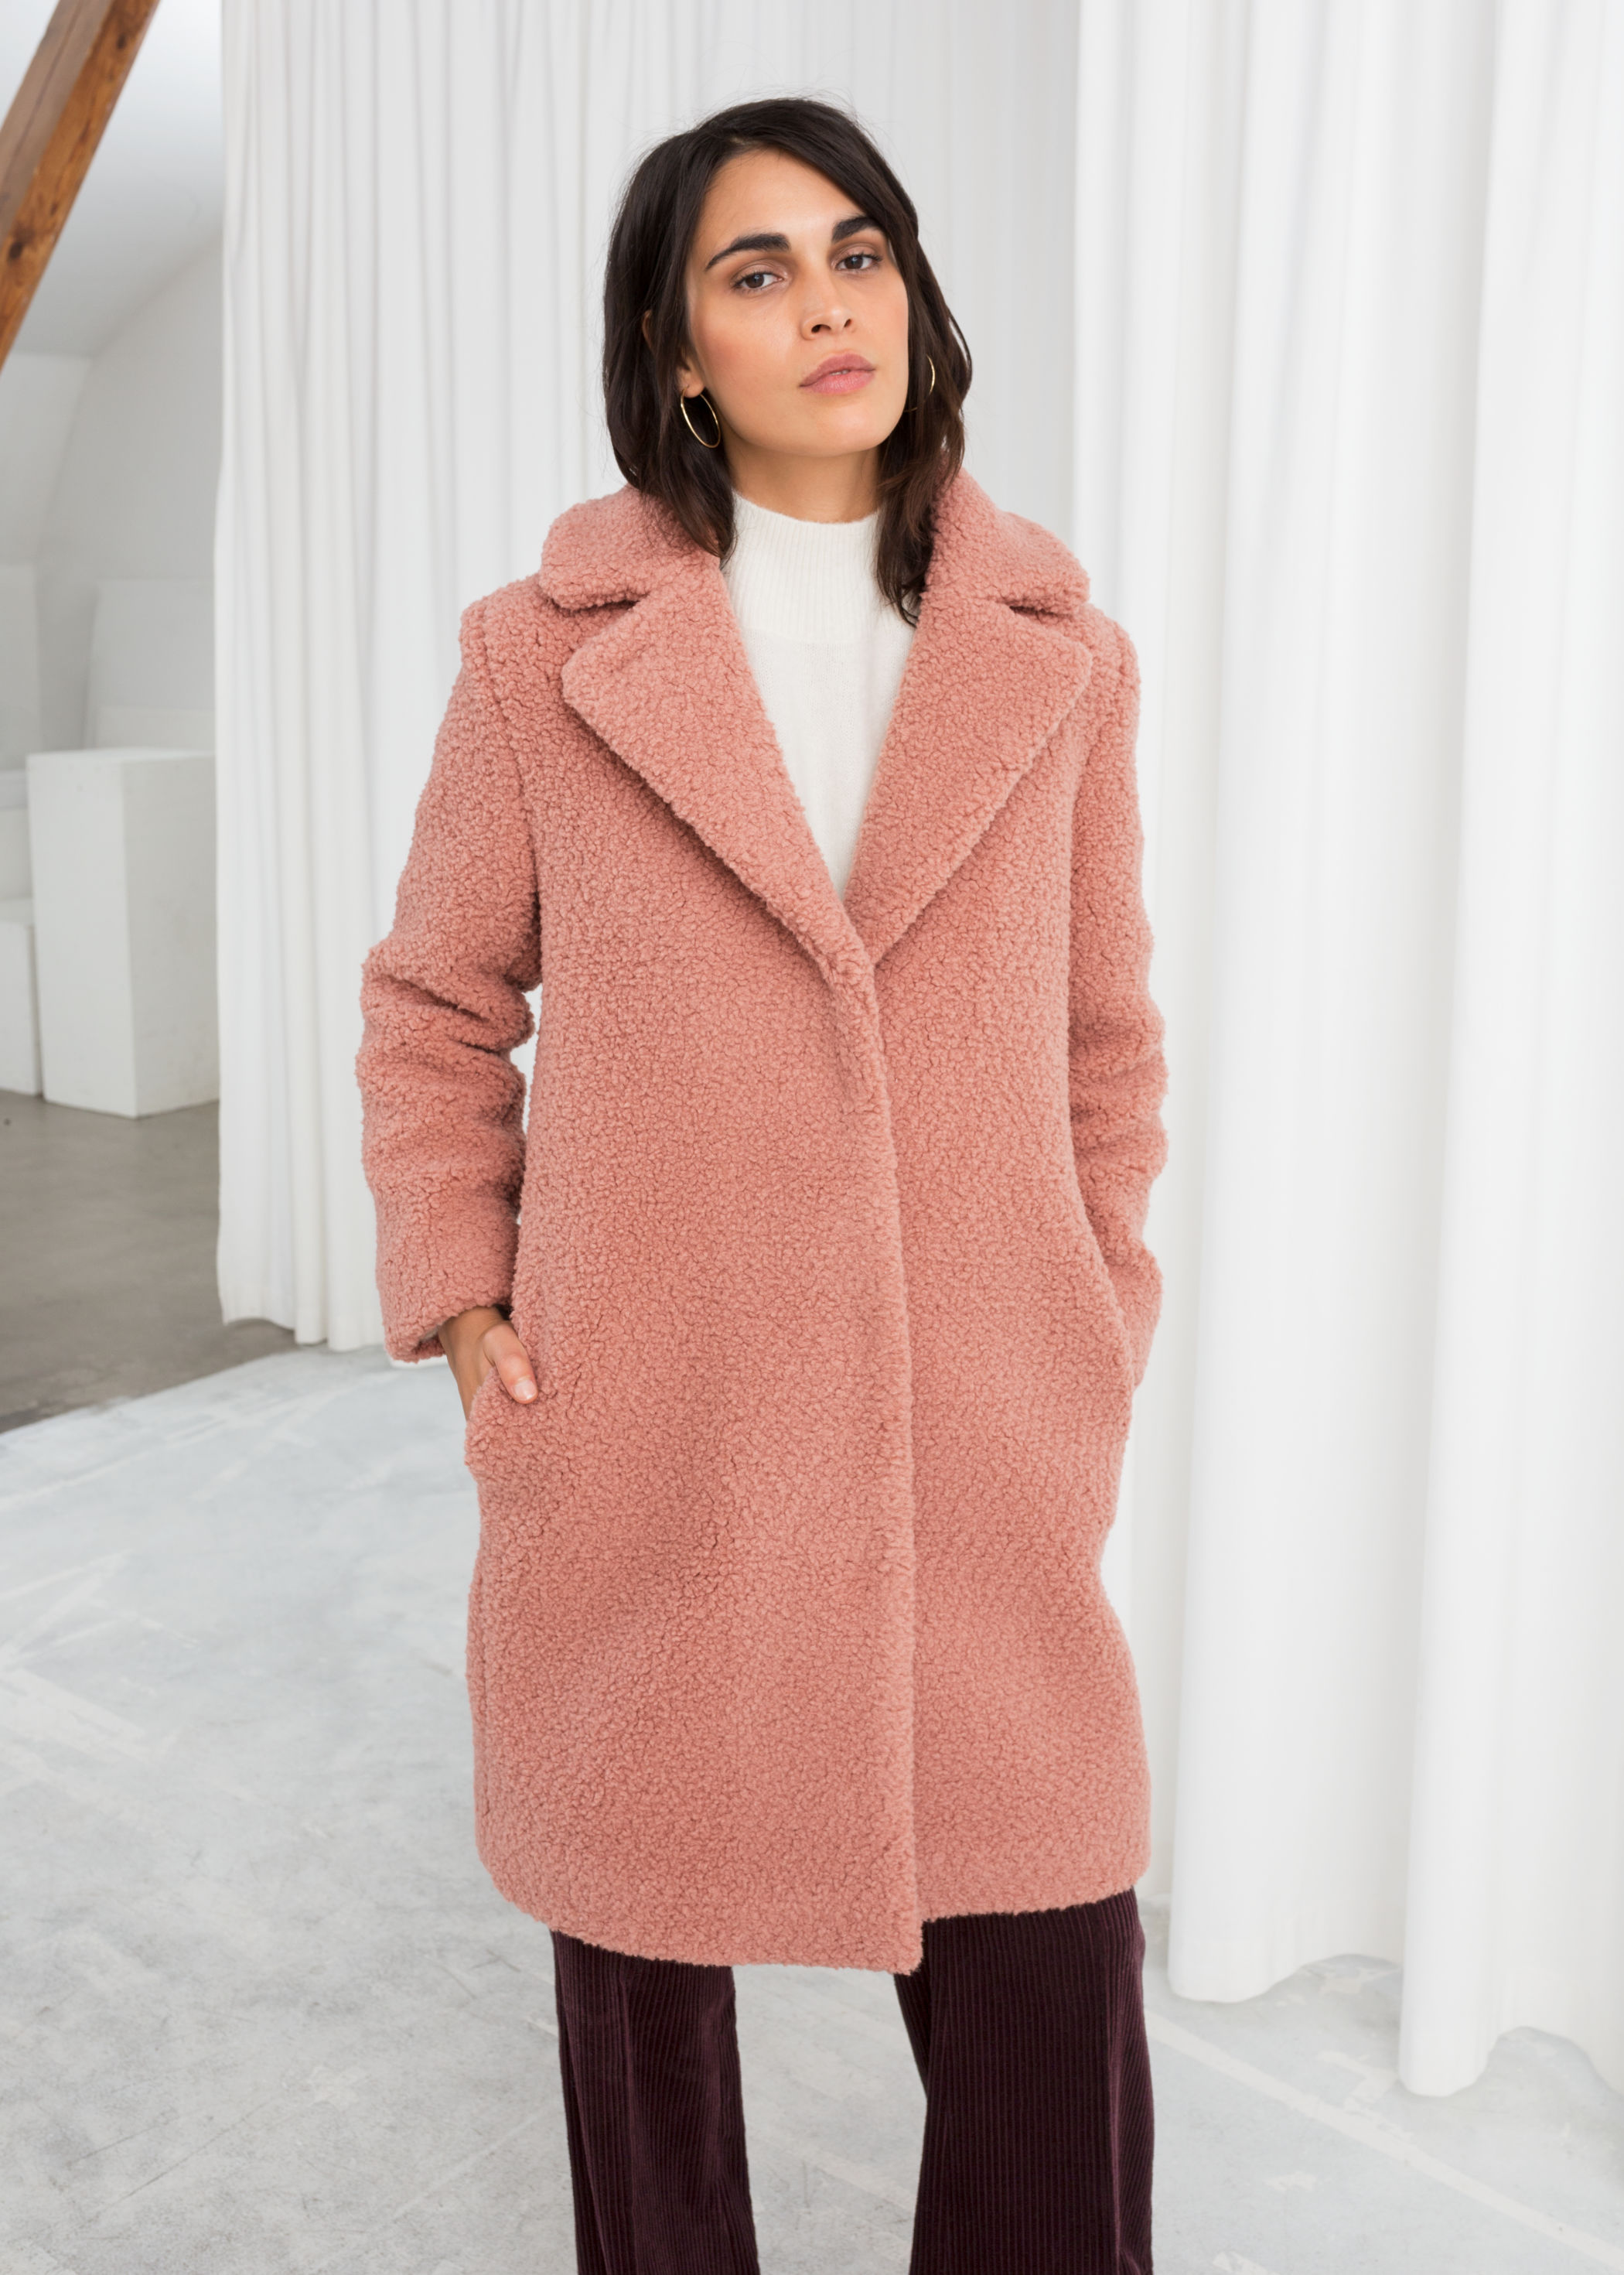 cb7fe234 and-other-stories-faux-shearling-teddy-coat-katie-considers-blog ...